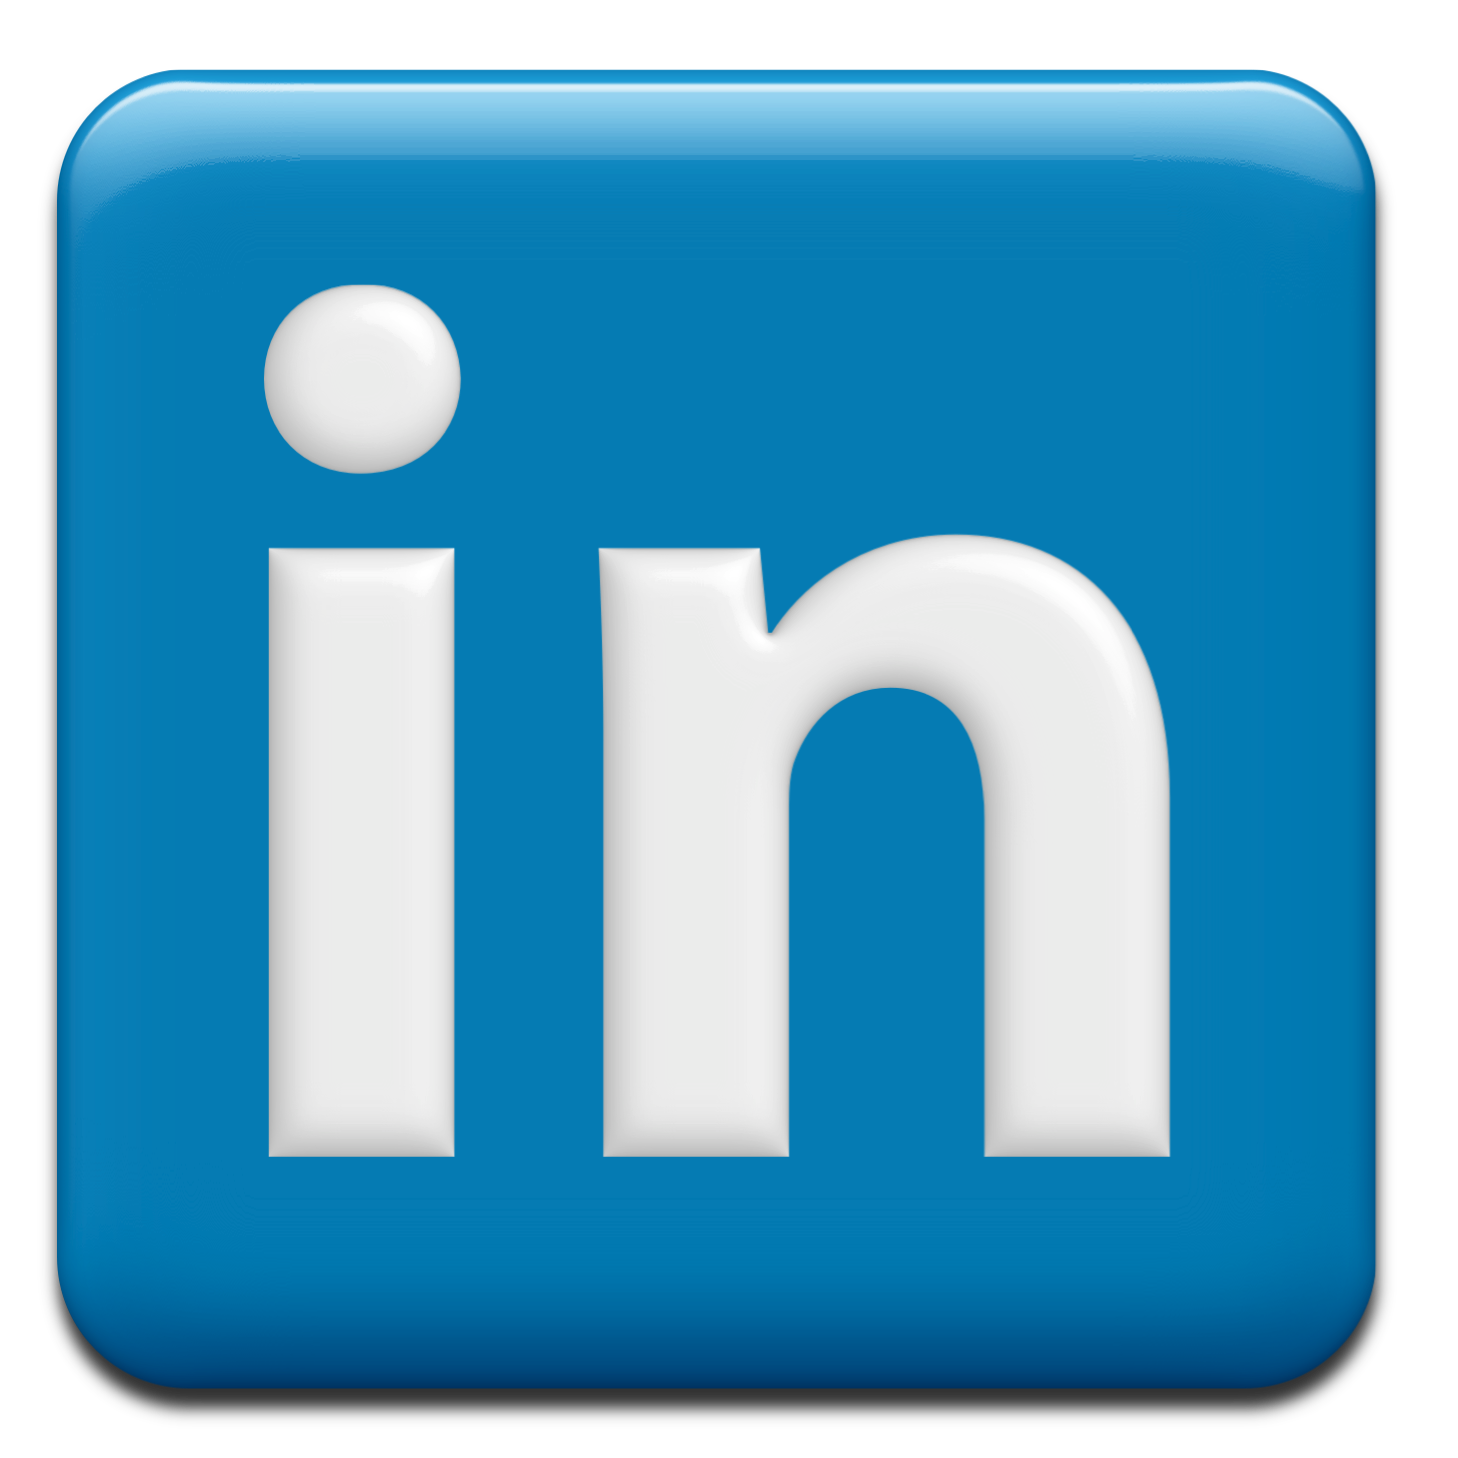 View João Palotti's profile on LinkedIn